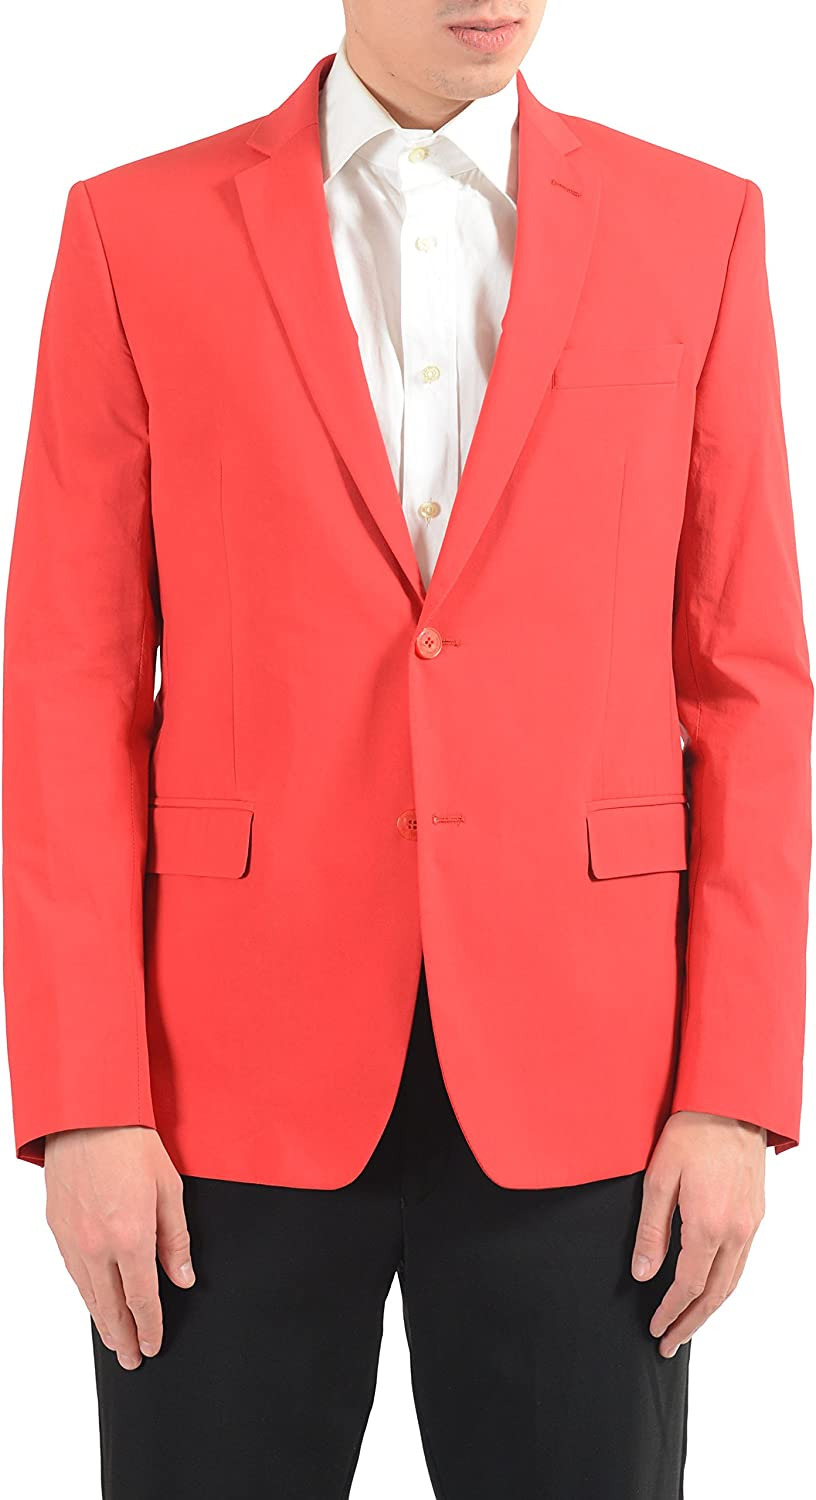 Versace Collection Men's Red Stretch Two Button Blazer Sport Coat Size US 40 IT 50